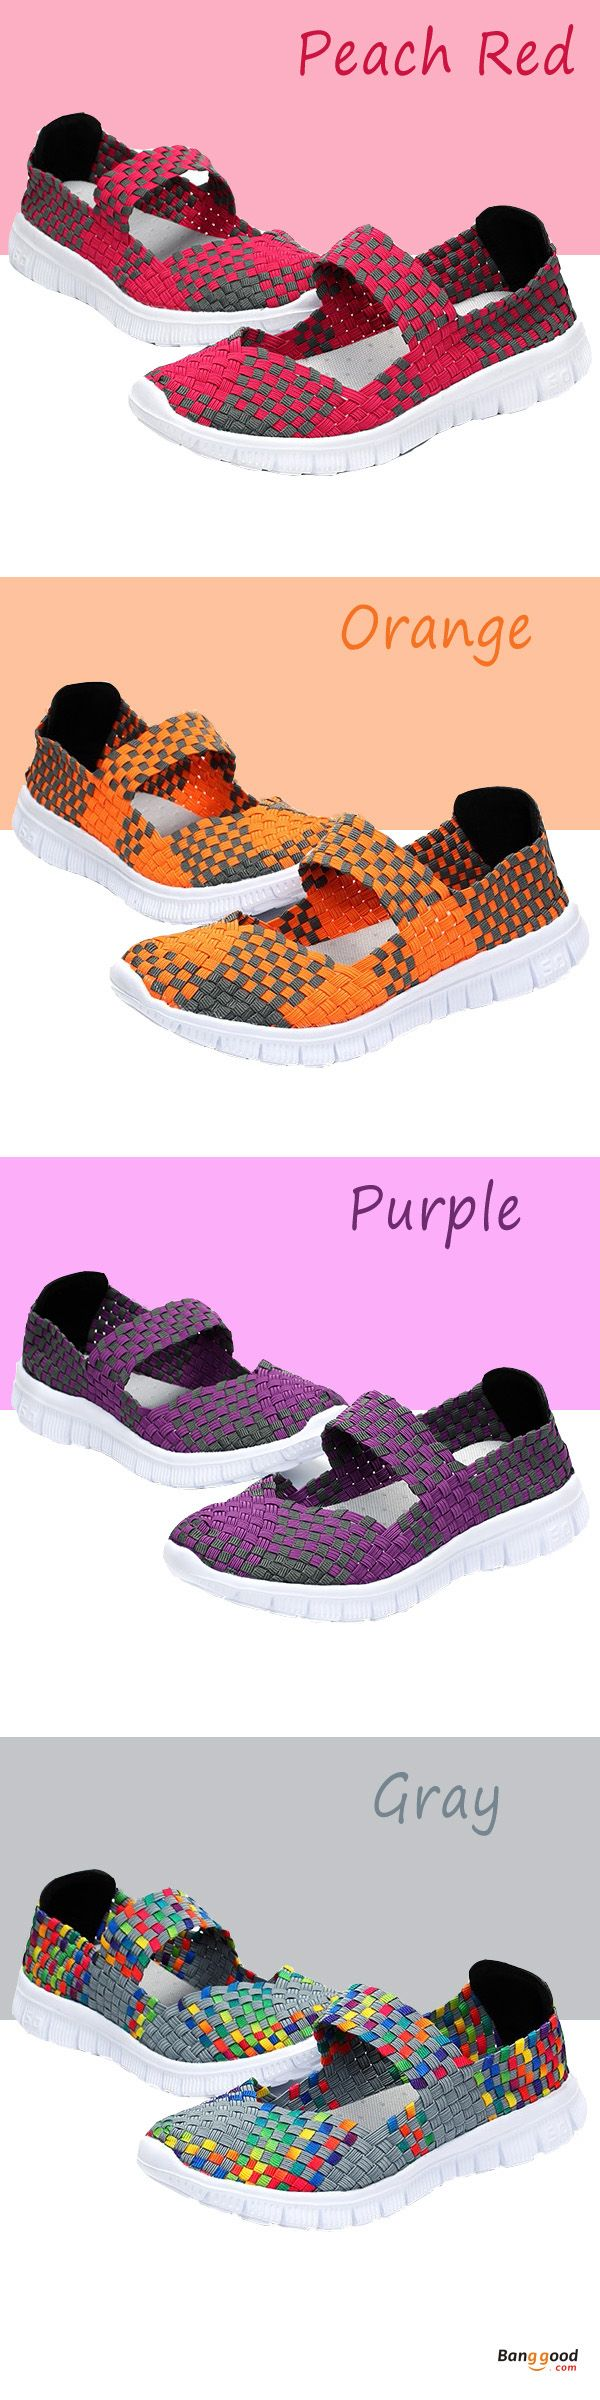 US$21.99 + Free shipping. Size(US): 5~11. Color: Orange, Purple, Gray, Peach Red. Upper Material: Woven Belt. Fall in love with casual and sport style! Summer Sandals, Women Flat Sandals, shoes flats, shoes sandals, Casual, Outdoor, Comfortable.